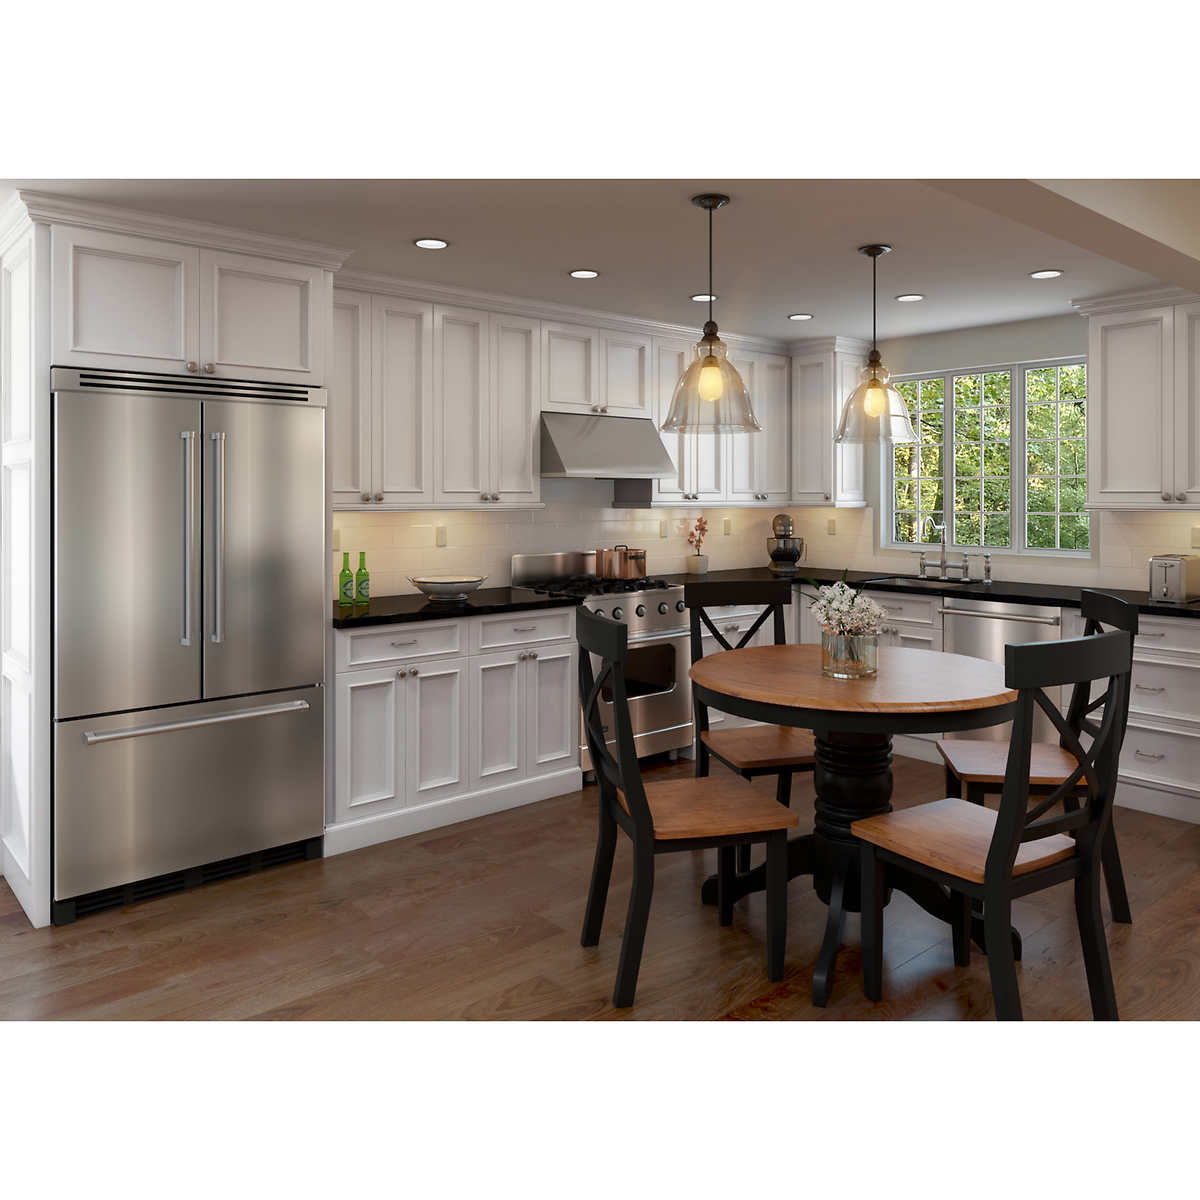 Kitchen cabinet doors barrie - Kitchens By Foremost Custom Designed Kitchen Cabinets